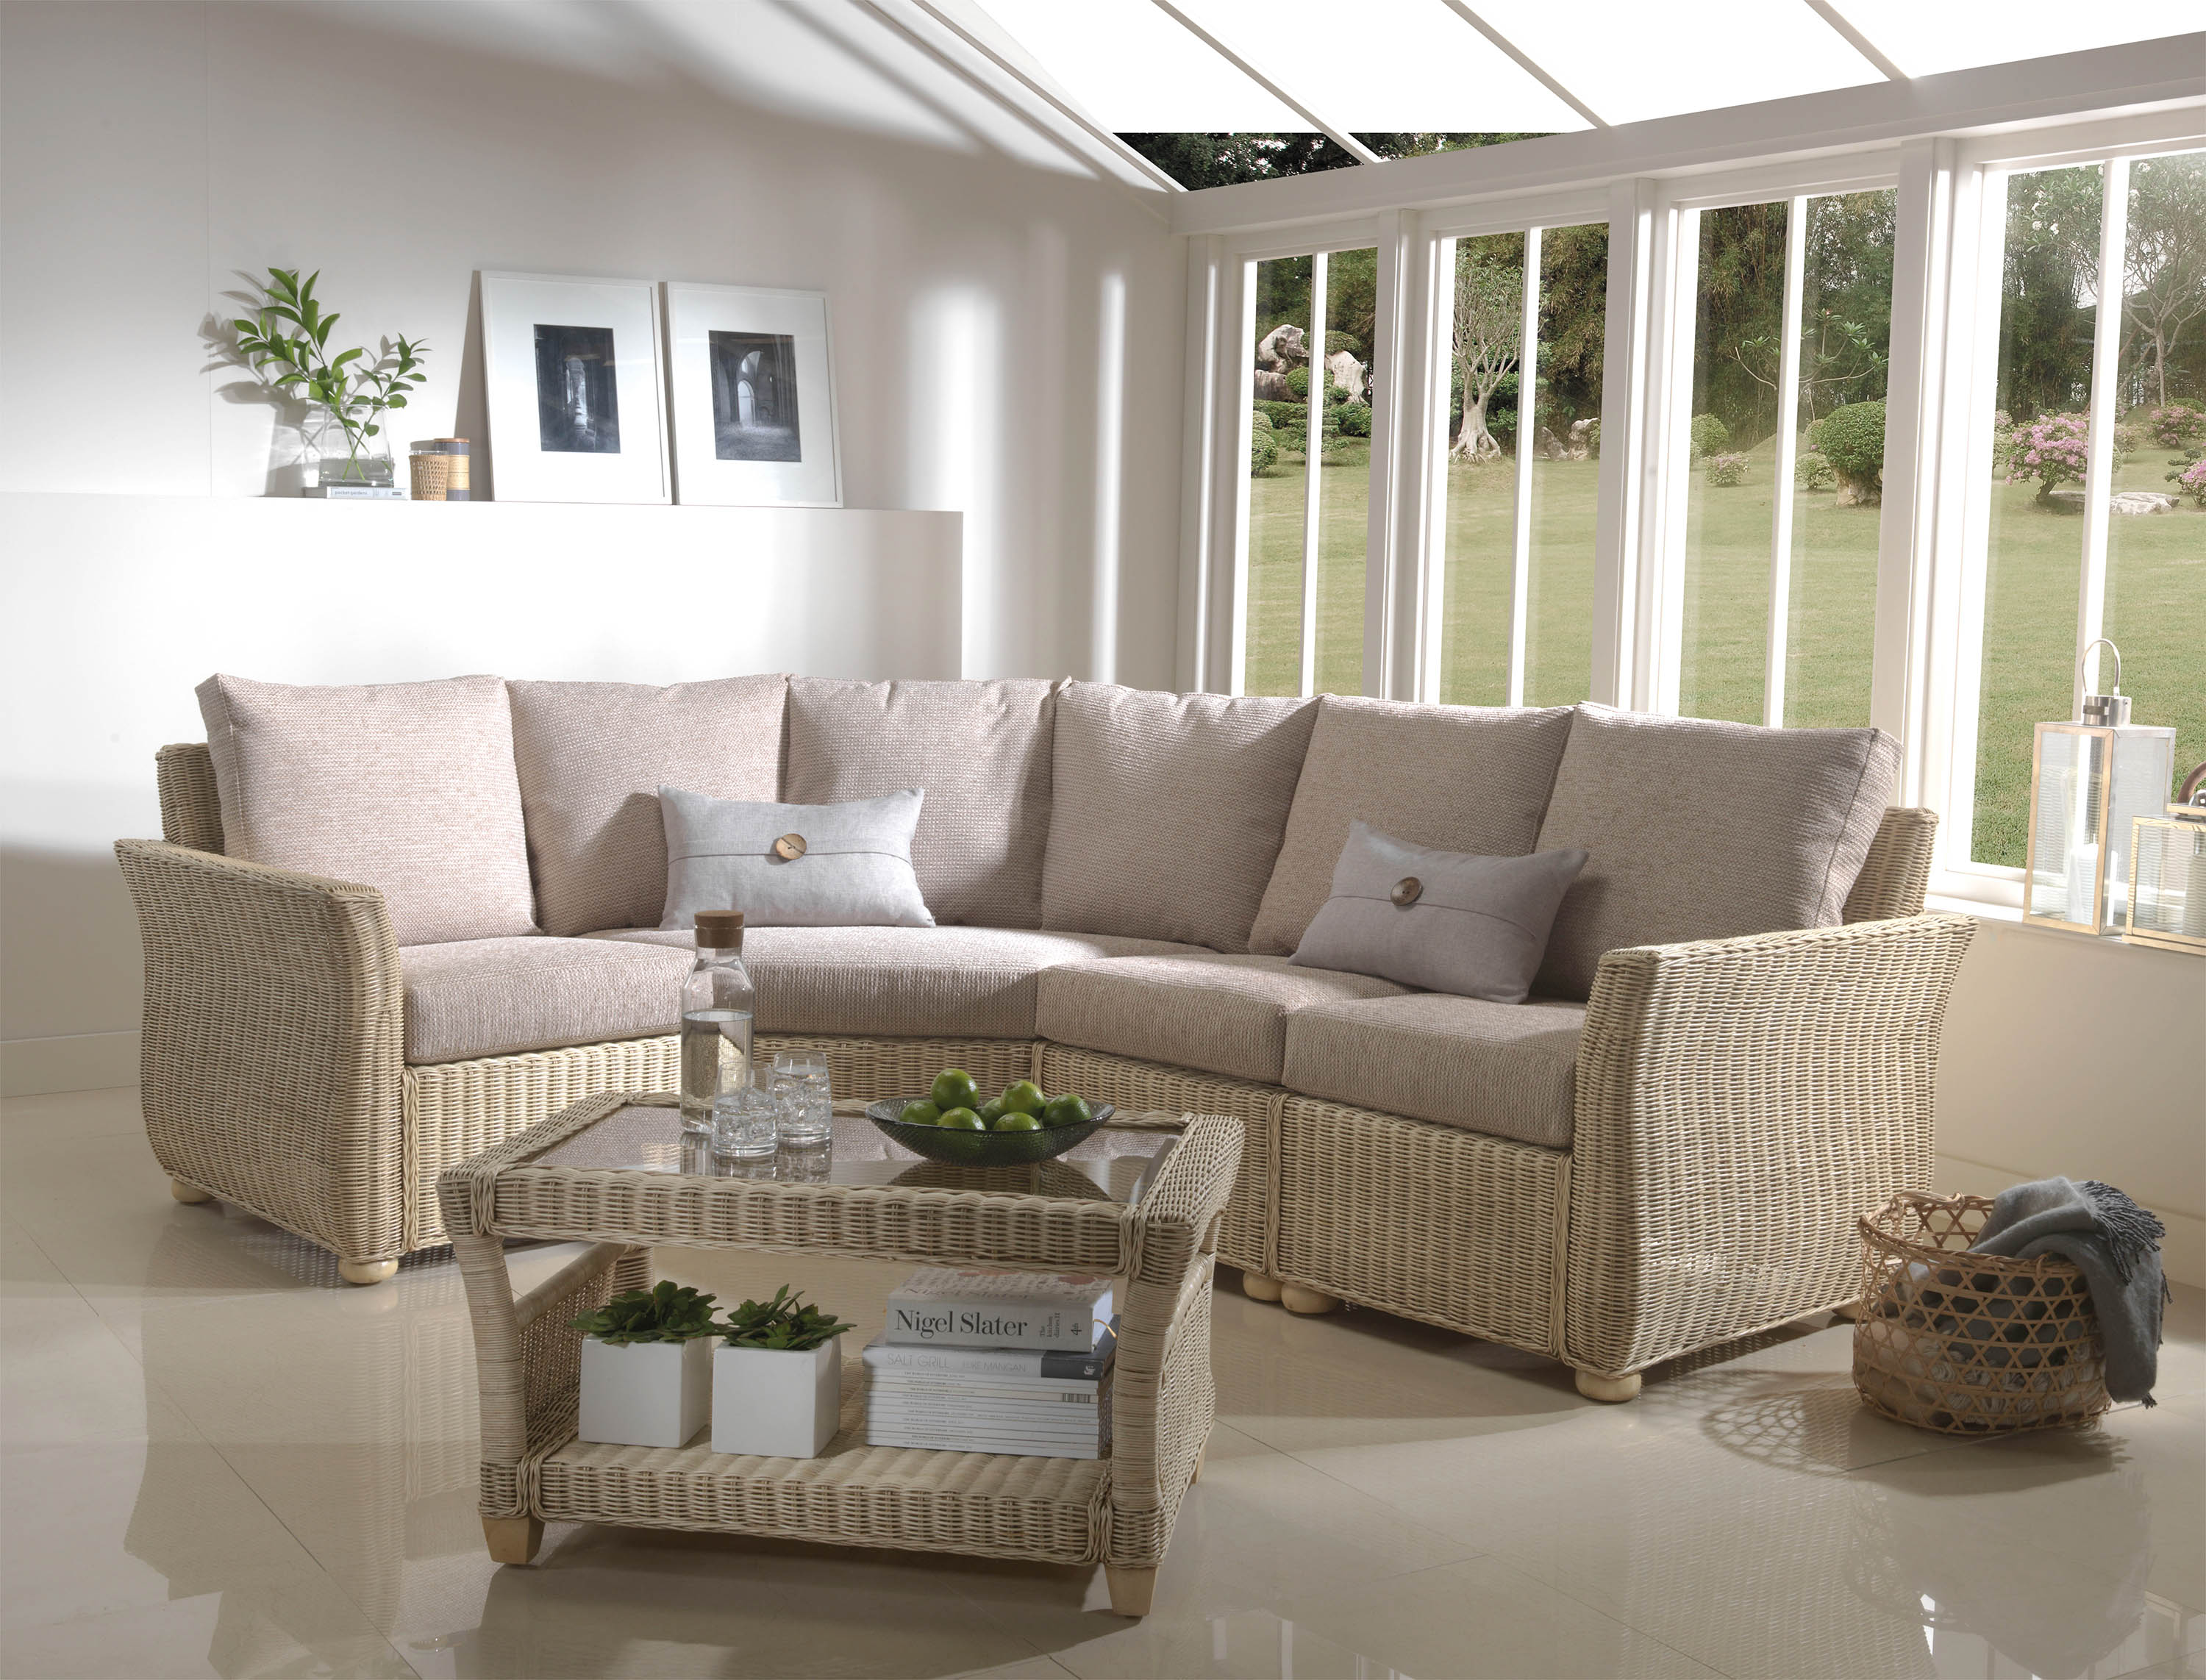 Desser Corsica Modular Conservatory Sofa Suite Sold by Highgate Furniture Southend On Sea